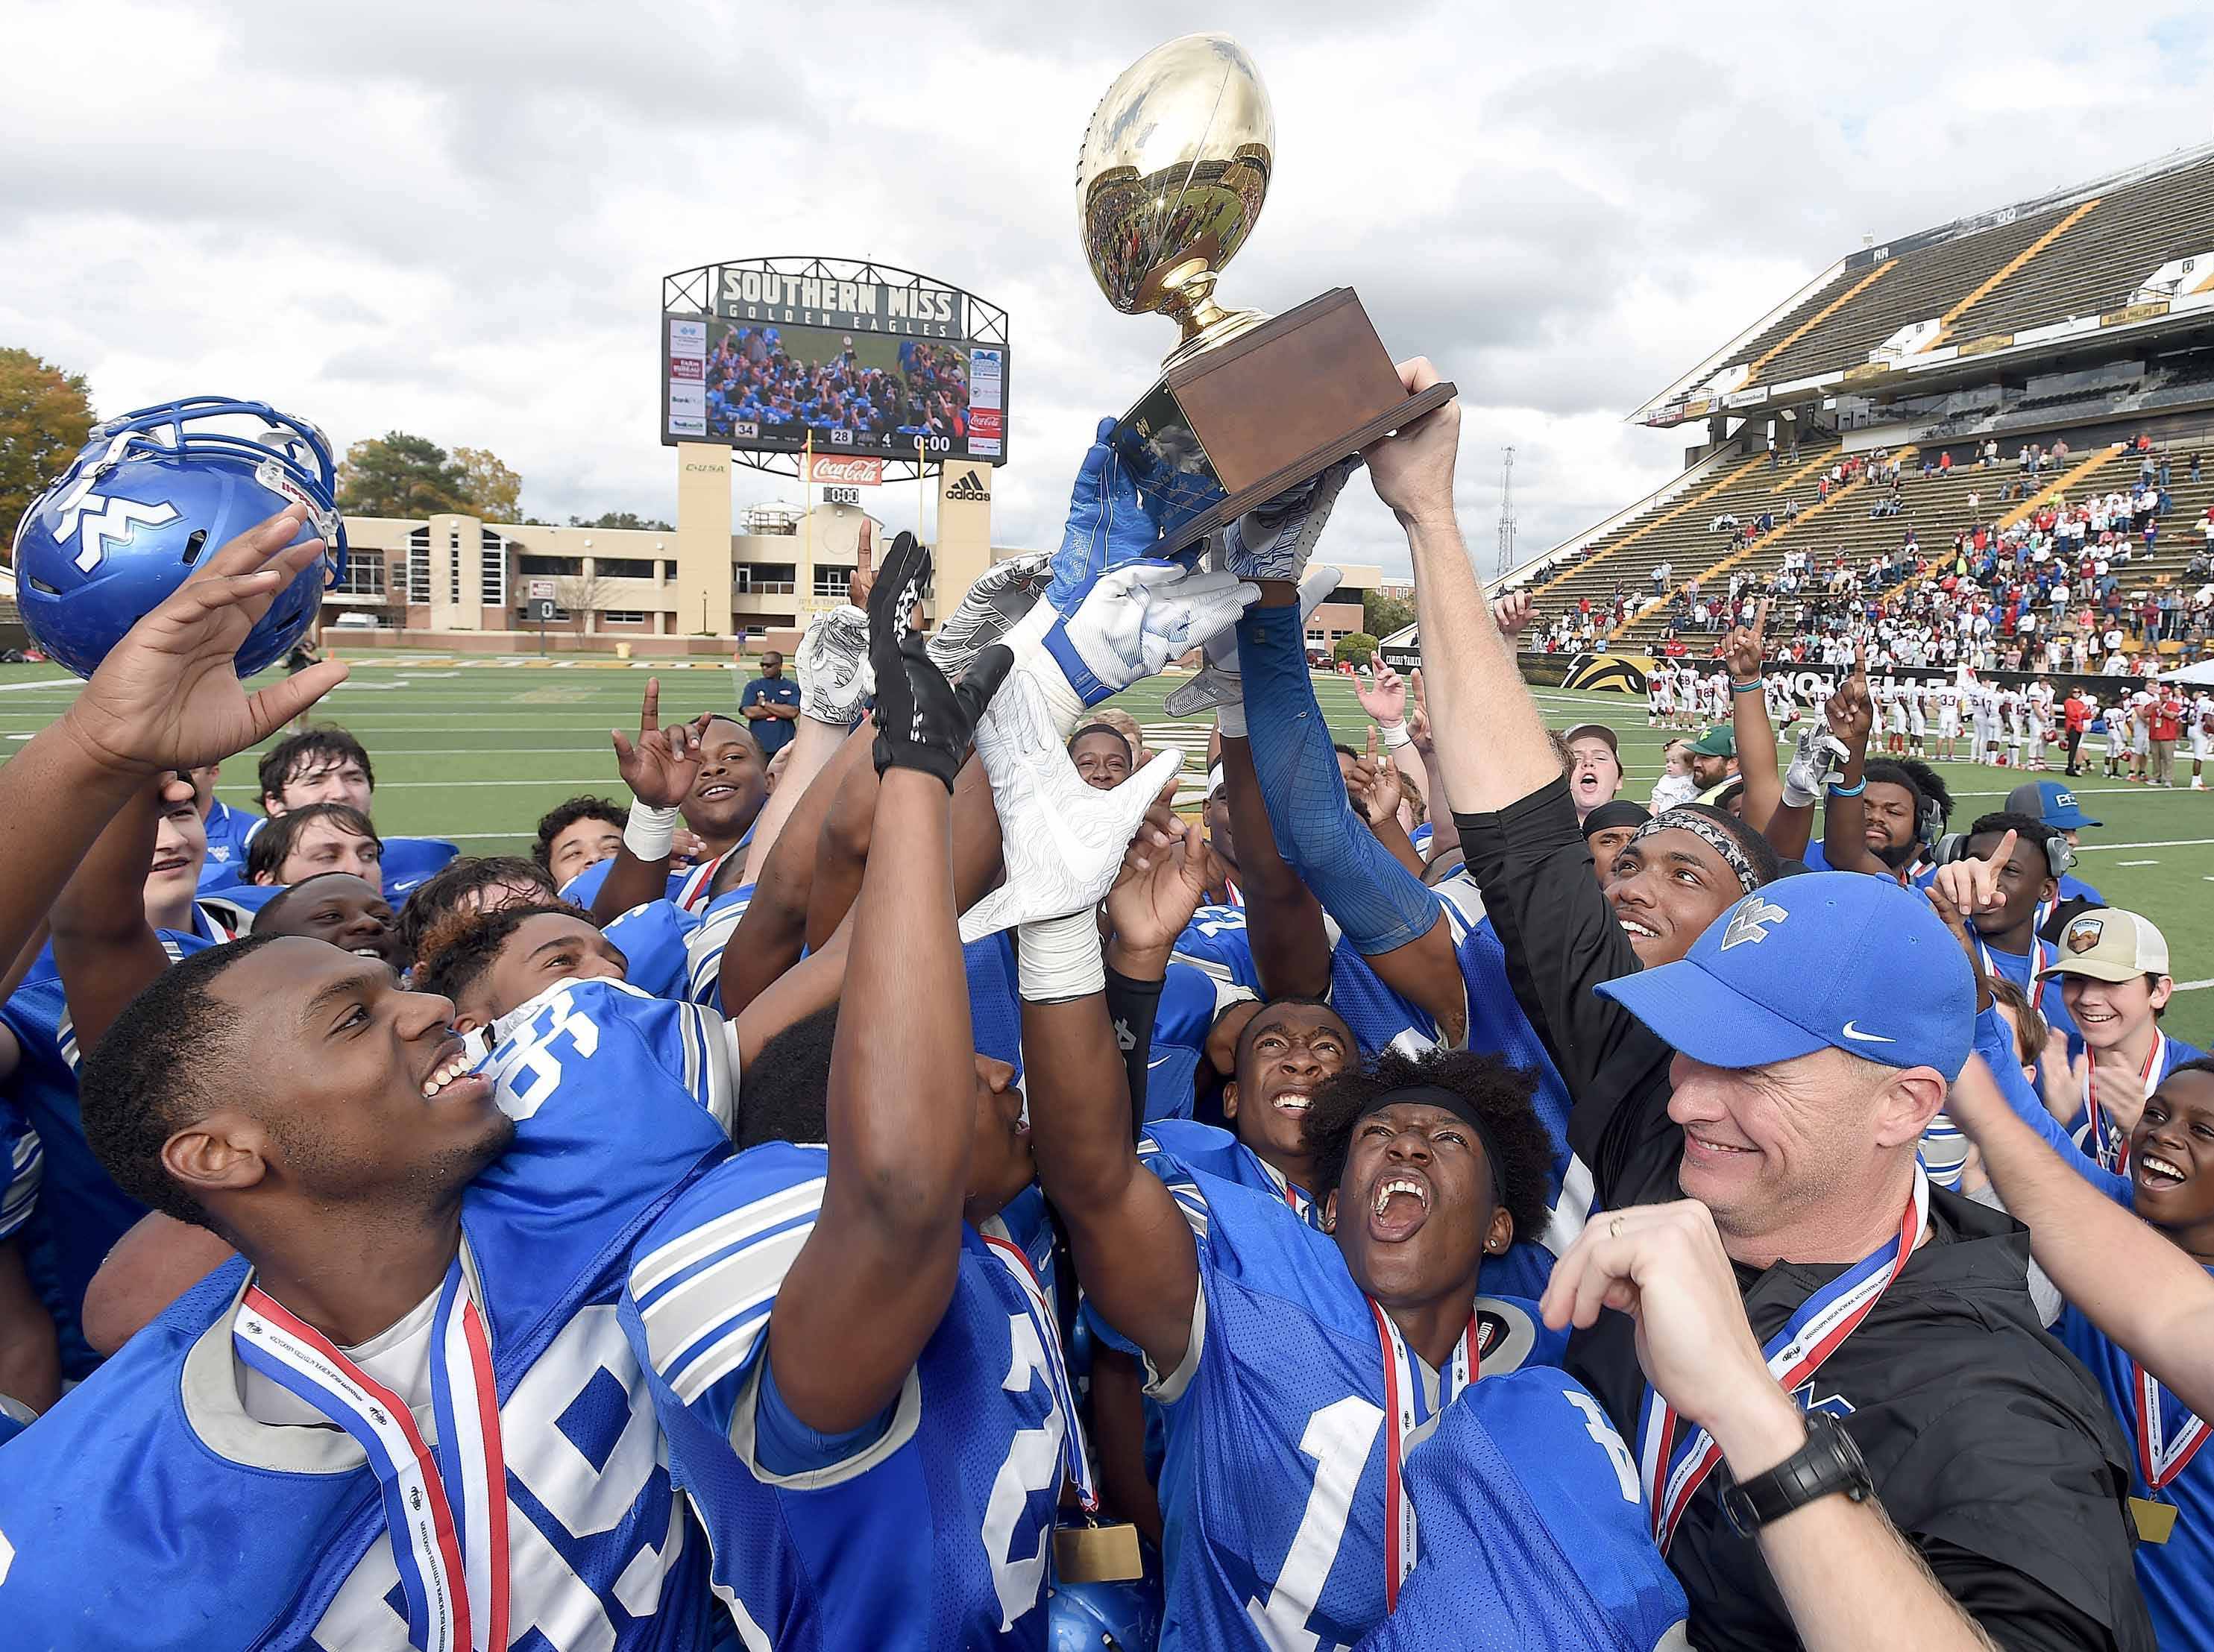 Water Valley head coach Brad Embry and the Blue Devils celebrate with the trophy on Friday, November 20, 2018, in the MHSAA BlueCross BlueShield Gridiron Classic High School Football Championships in M.M. Roberts Stadium on the University of Southern Mississippi campus in Hattiesburg, Miss.